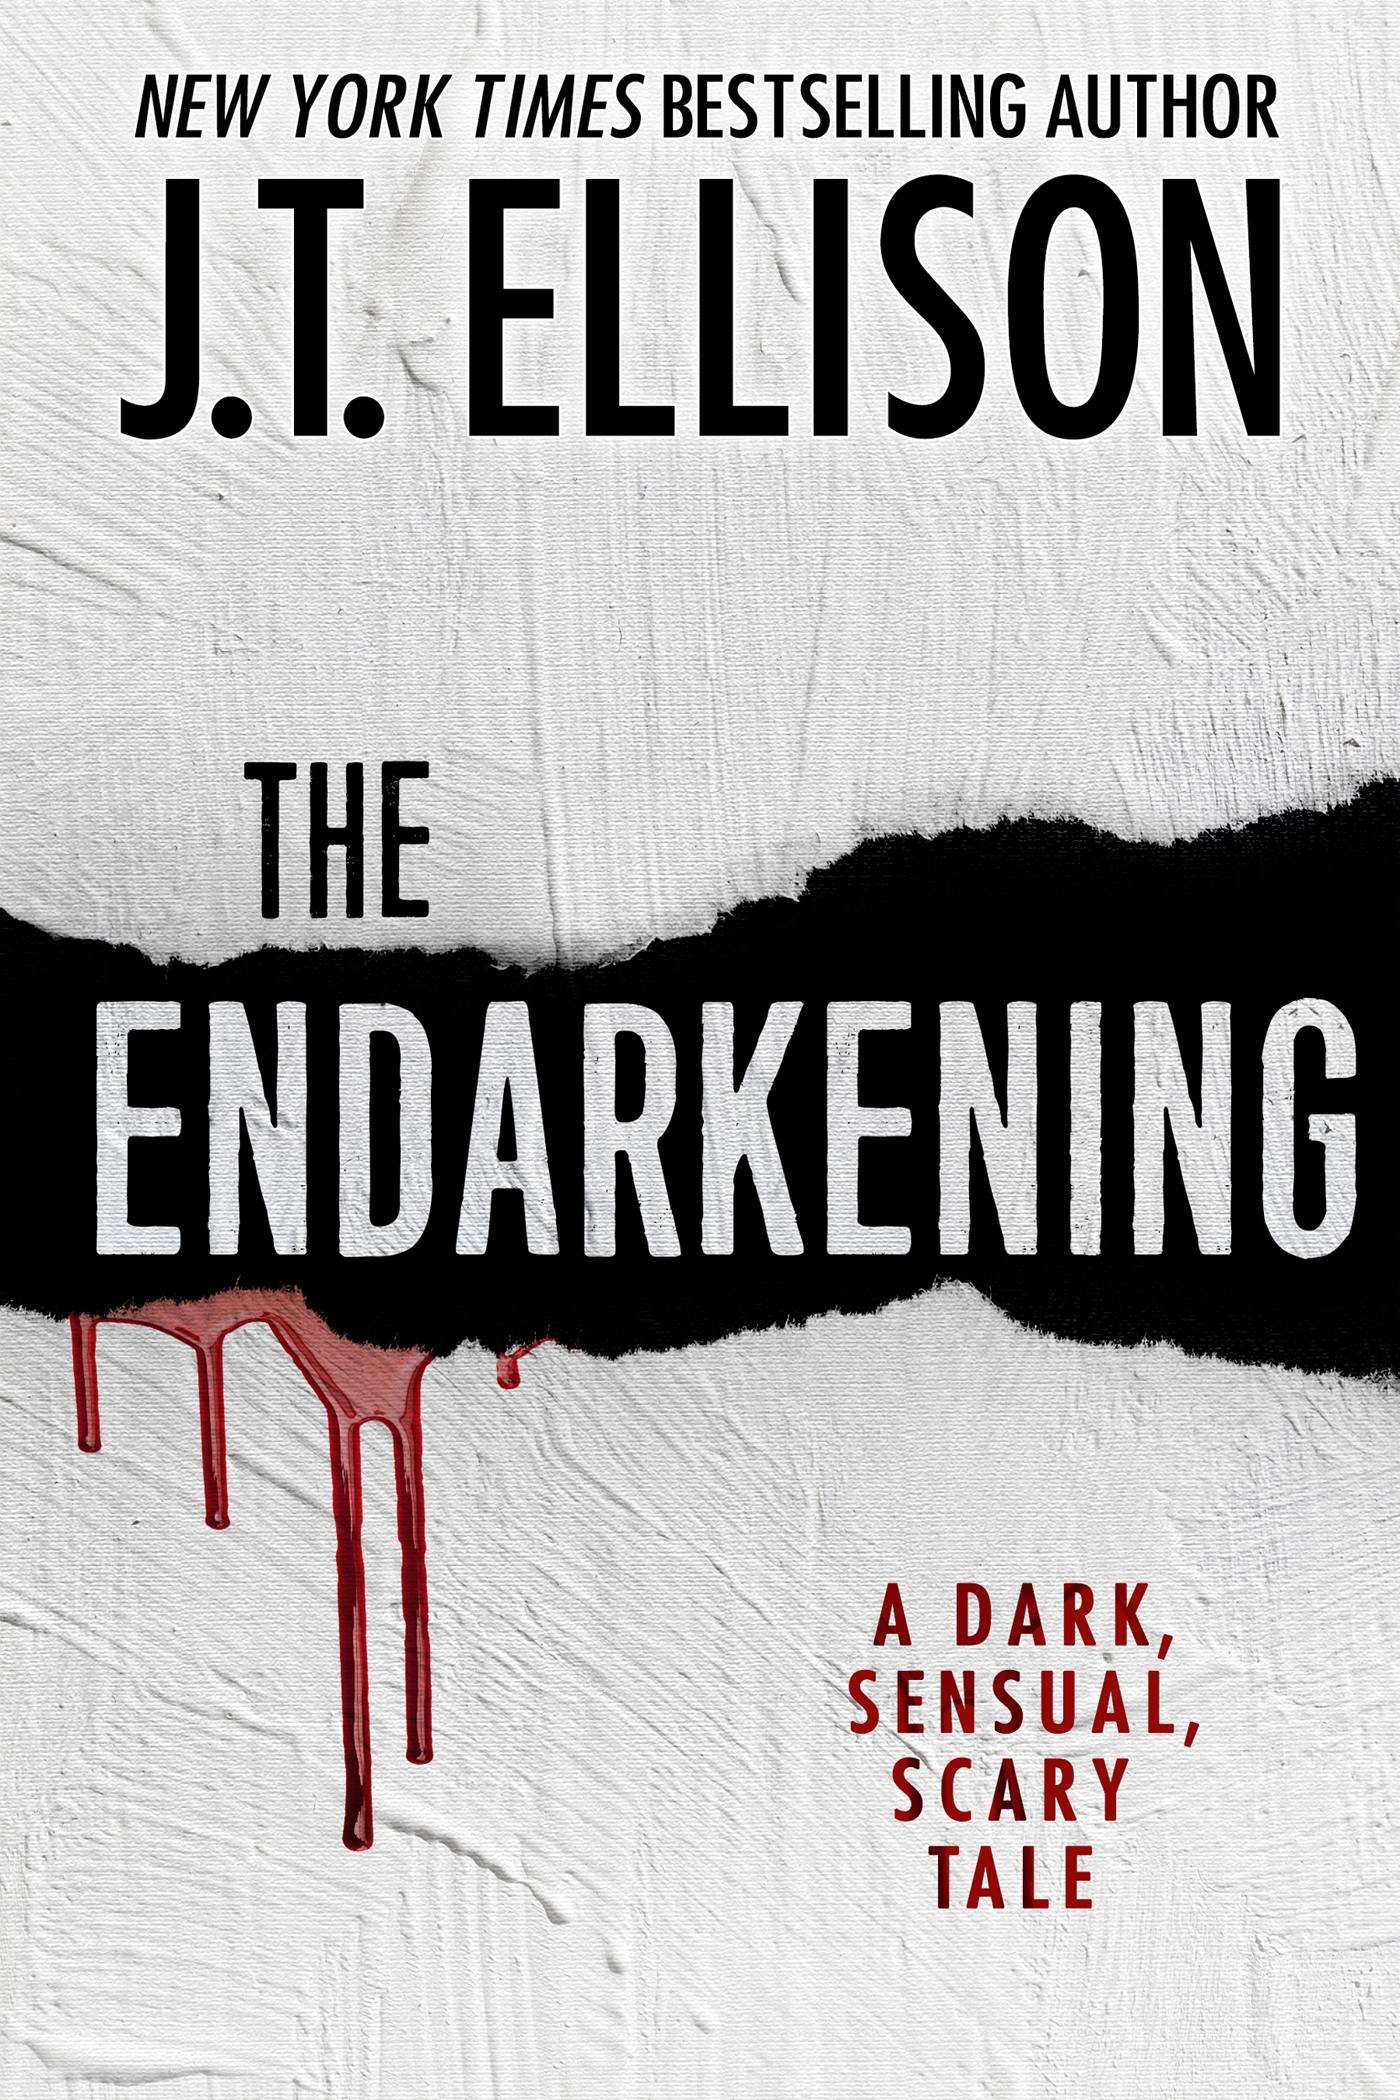 The Endarkening- on sale now!